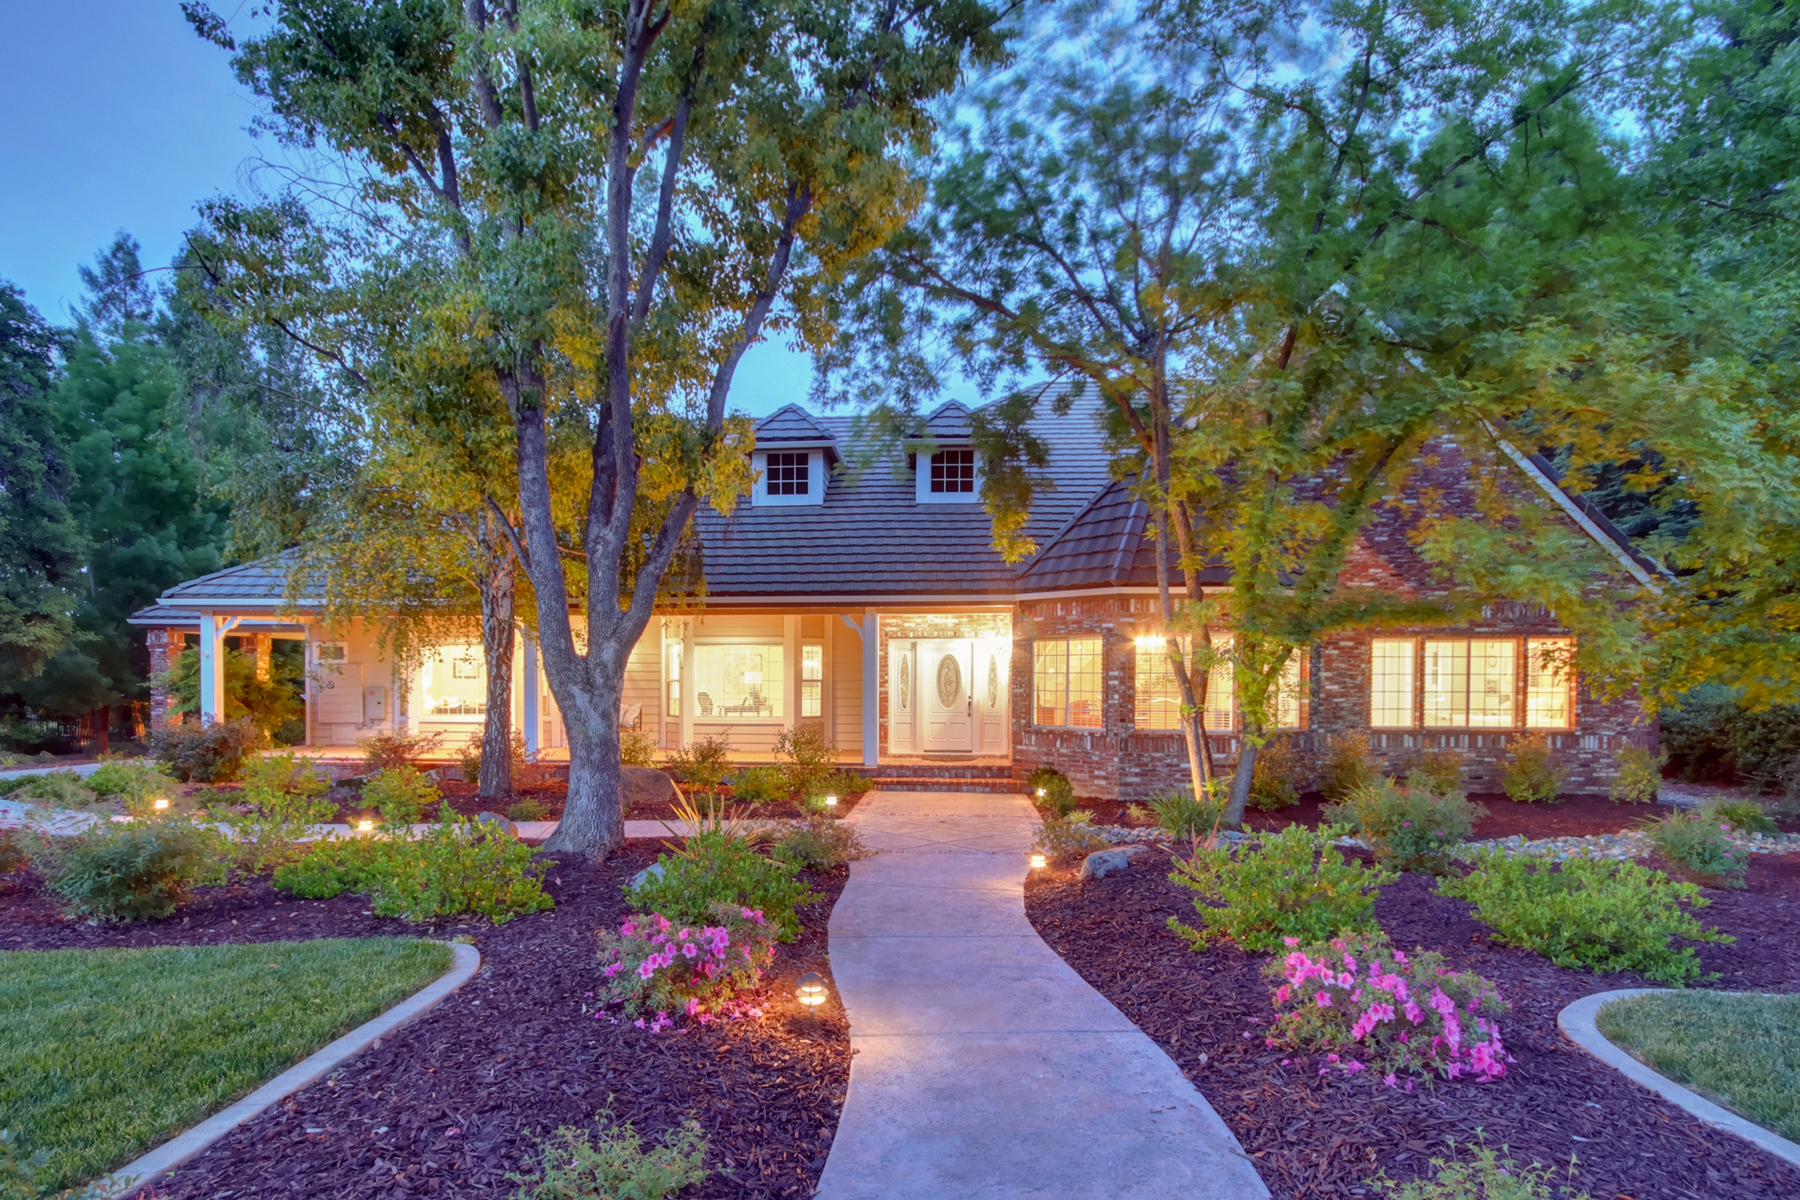 Single Family Homes for Active at 5060 Lexington Circle, Loomis, CA 95650 5060 Lexington Circle Loomis, California 95650 United States